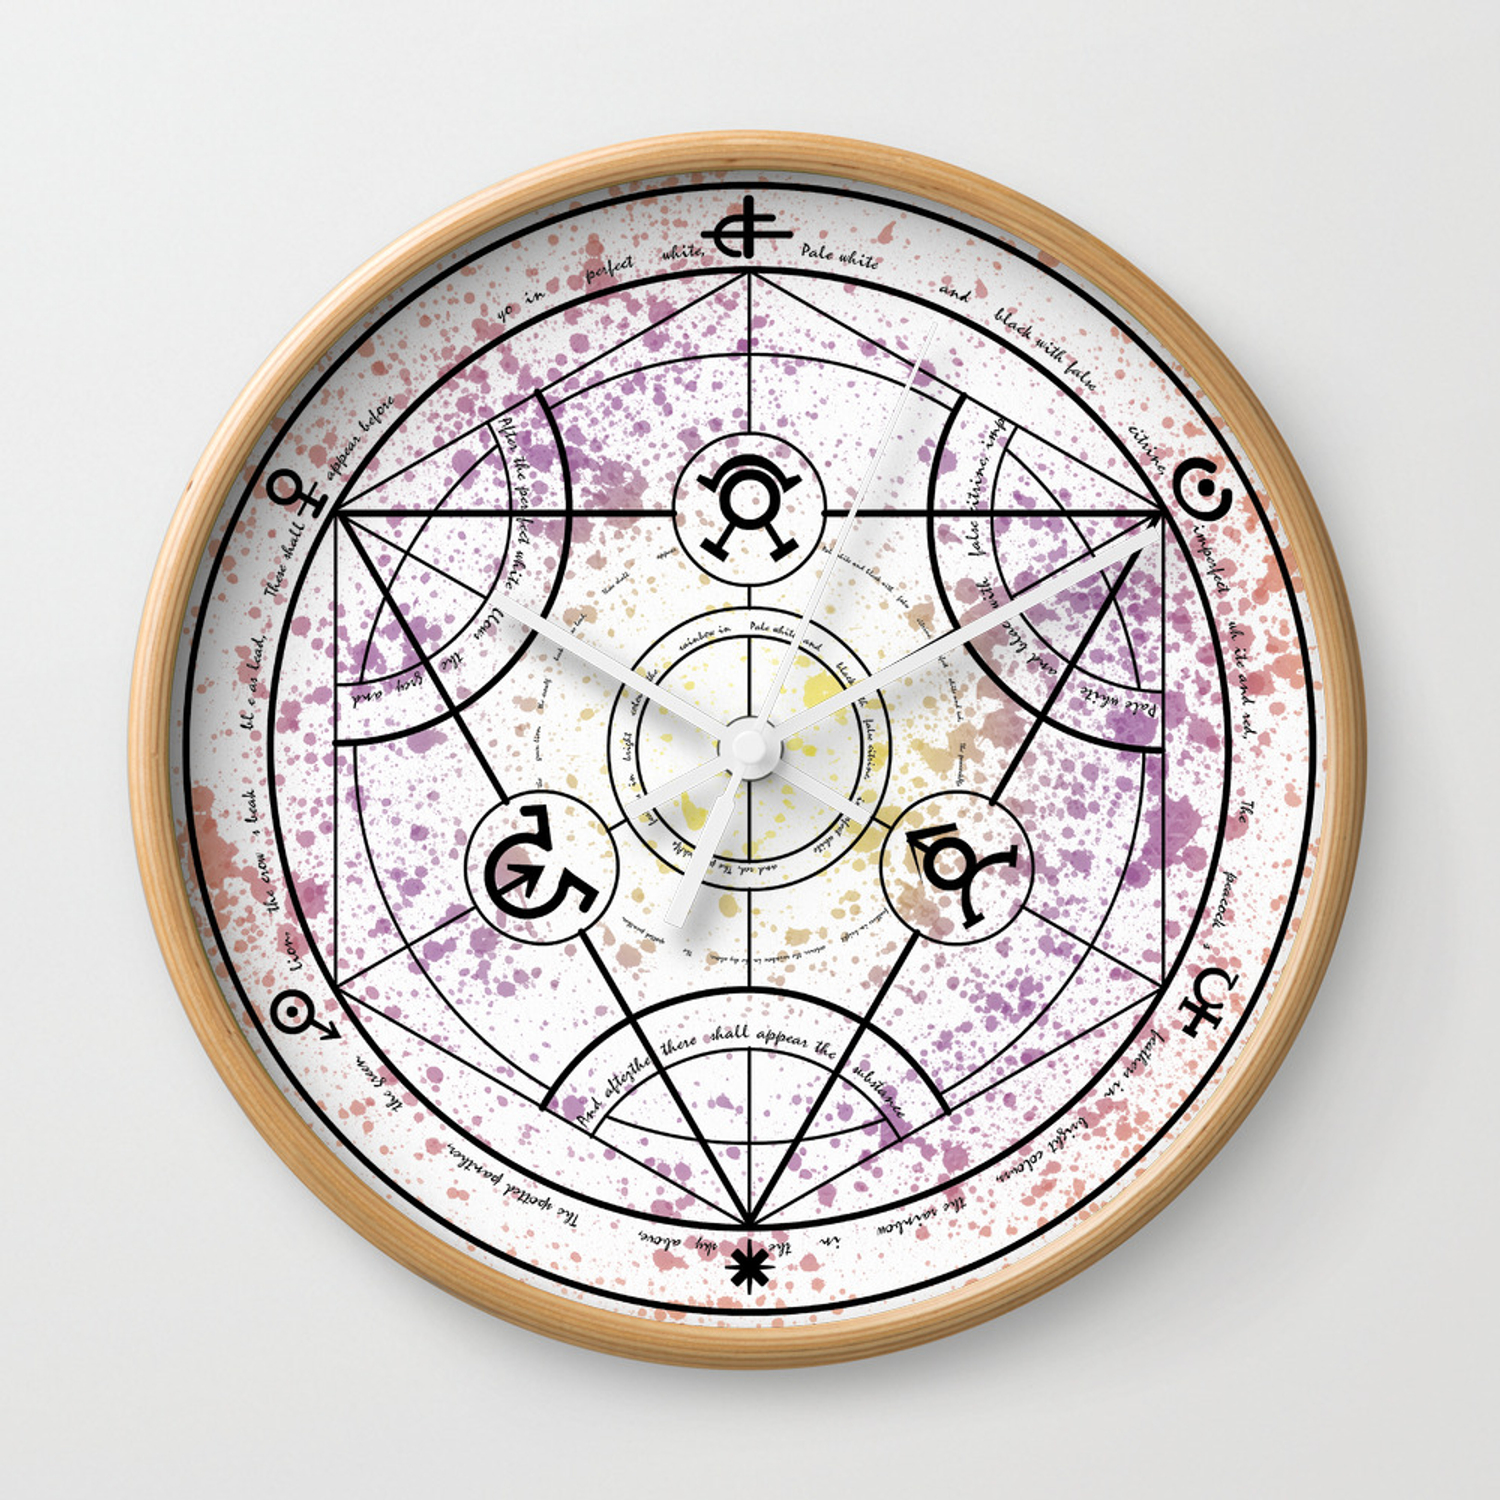 Transmutation Circle Fullmetal Alchemist Wall Clock By Maxiposters